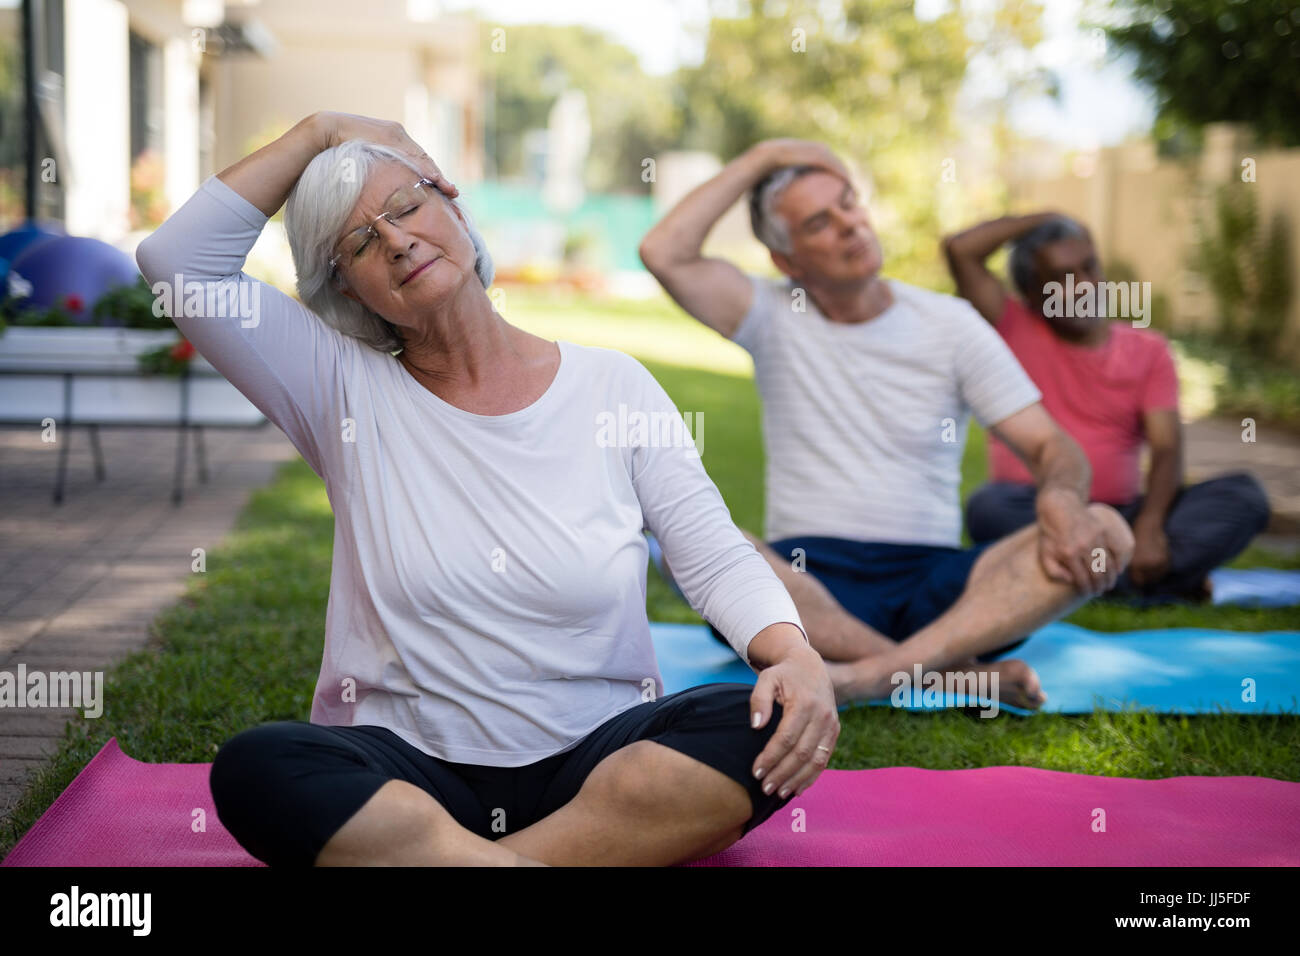 Senior people stretching heads while sitting on exercising mats at park - Stock Image